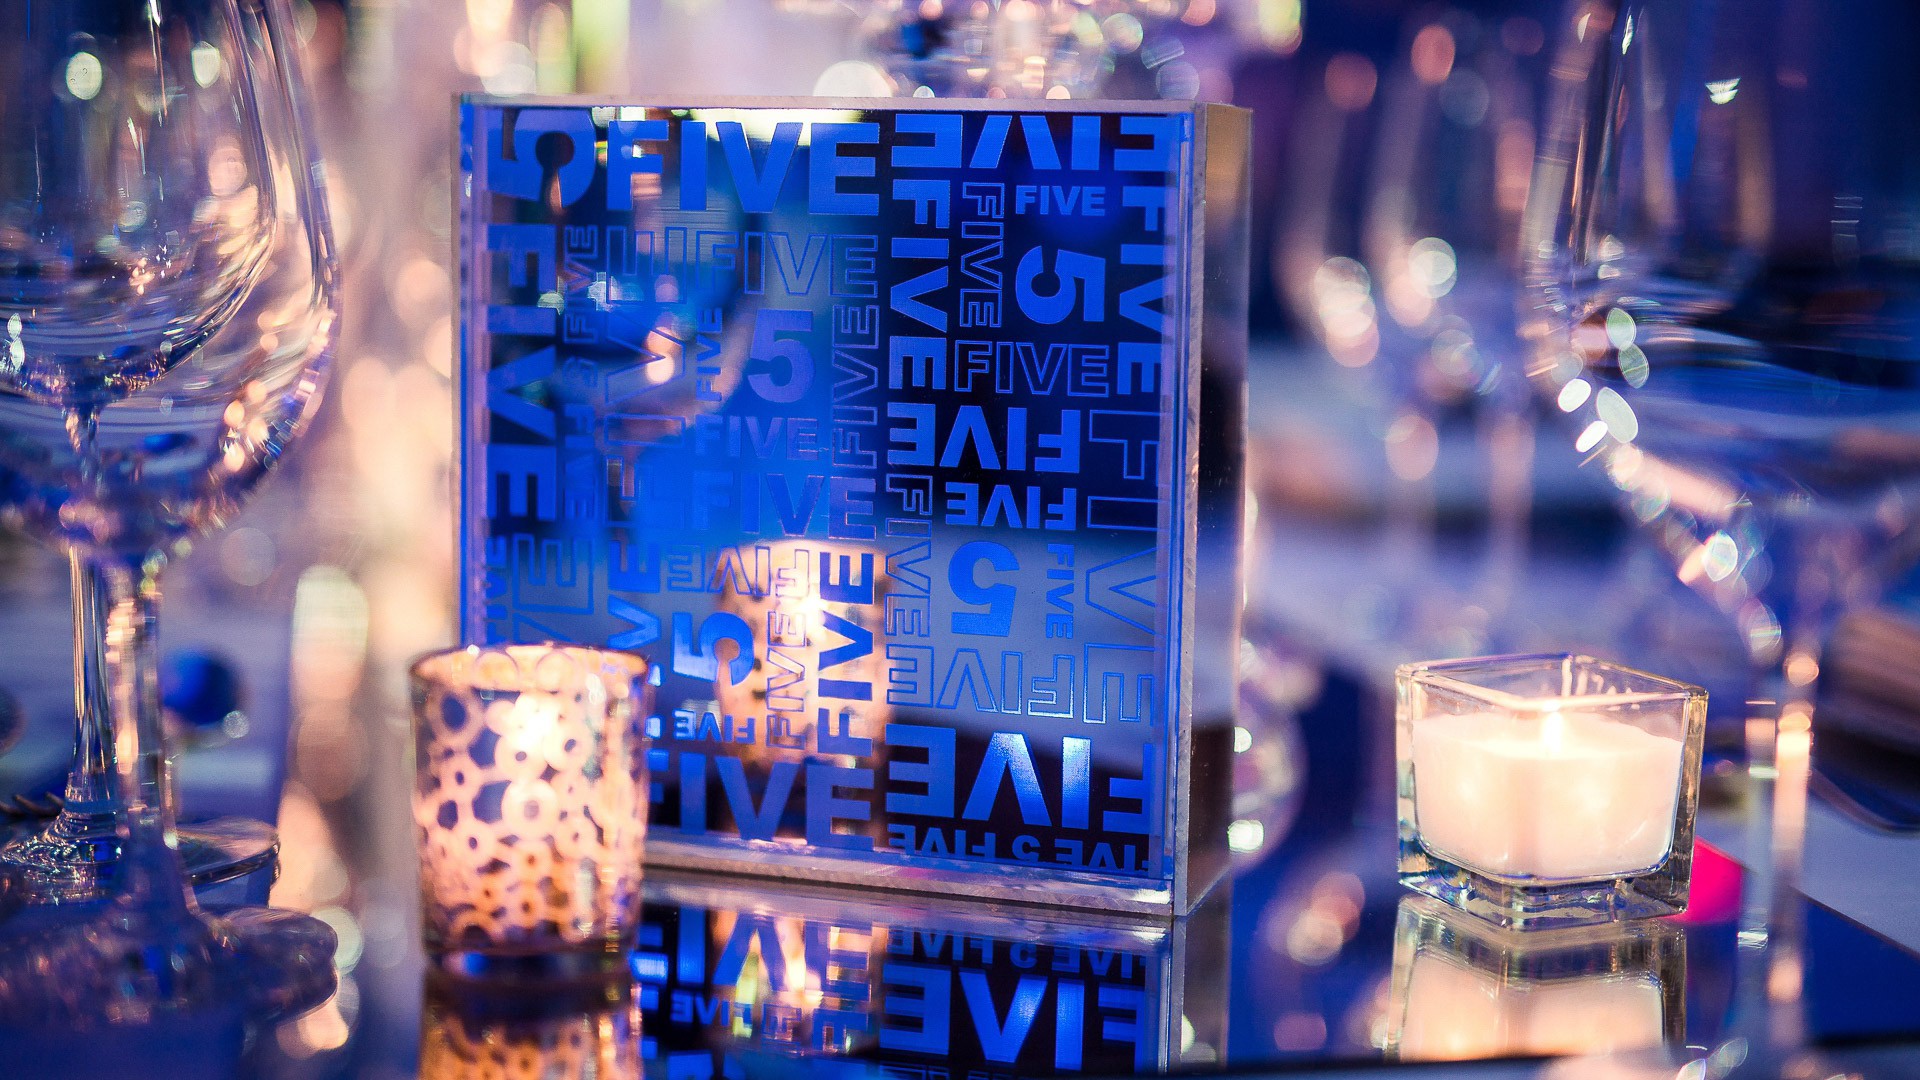 583 Park Ave event, diana gould, stillwell events, total entertainment bar mitzvah